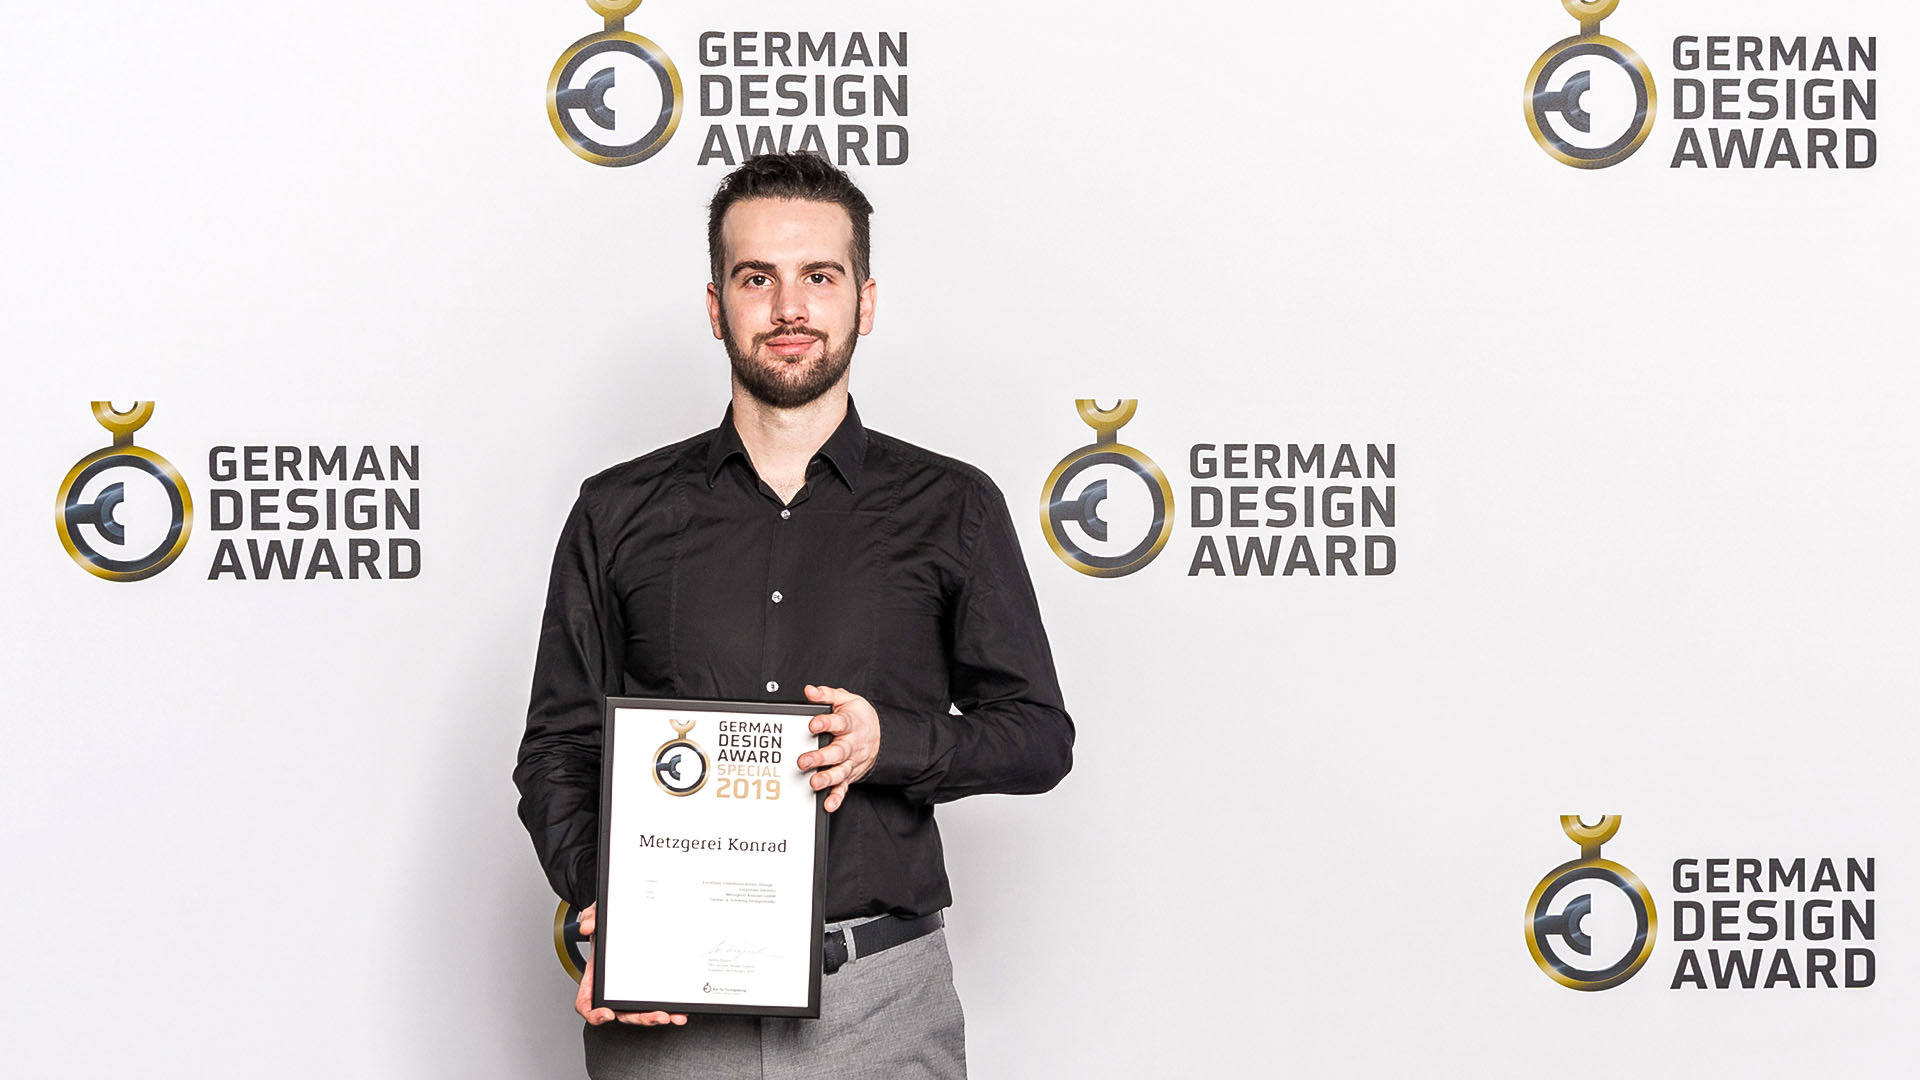 Diemer & Schweig Designstudio, German Design Award